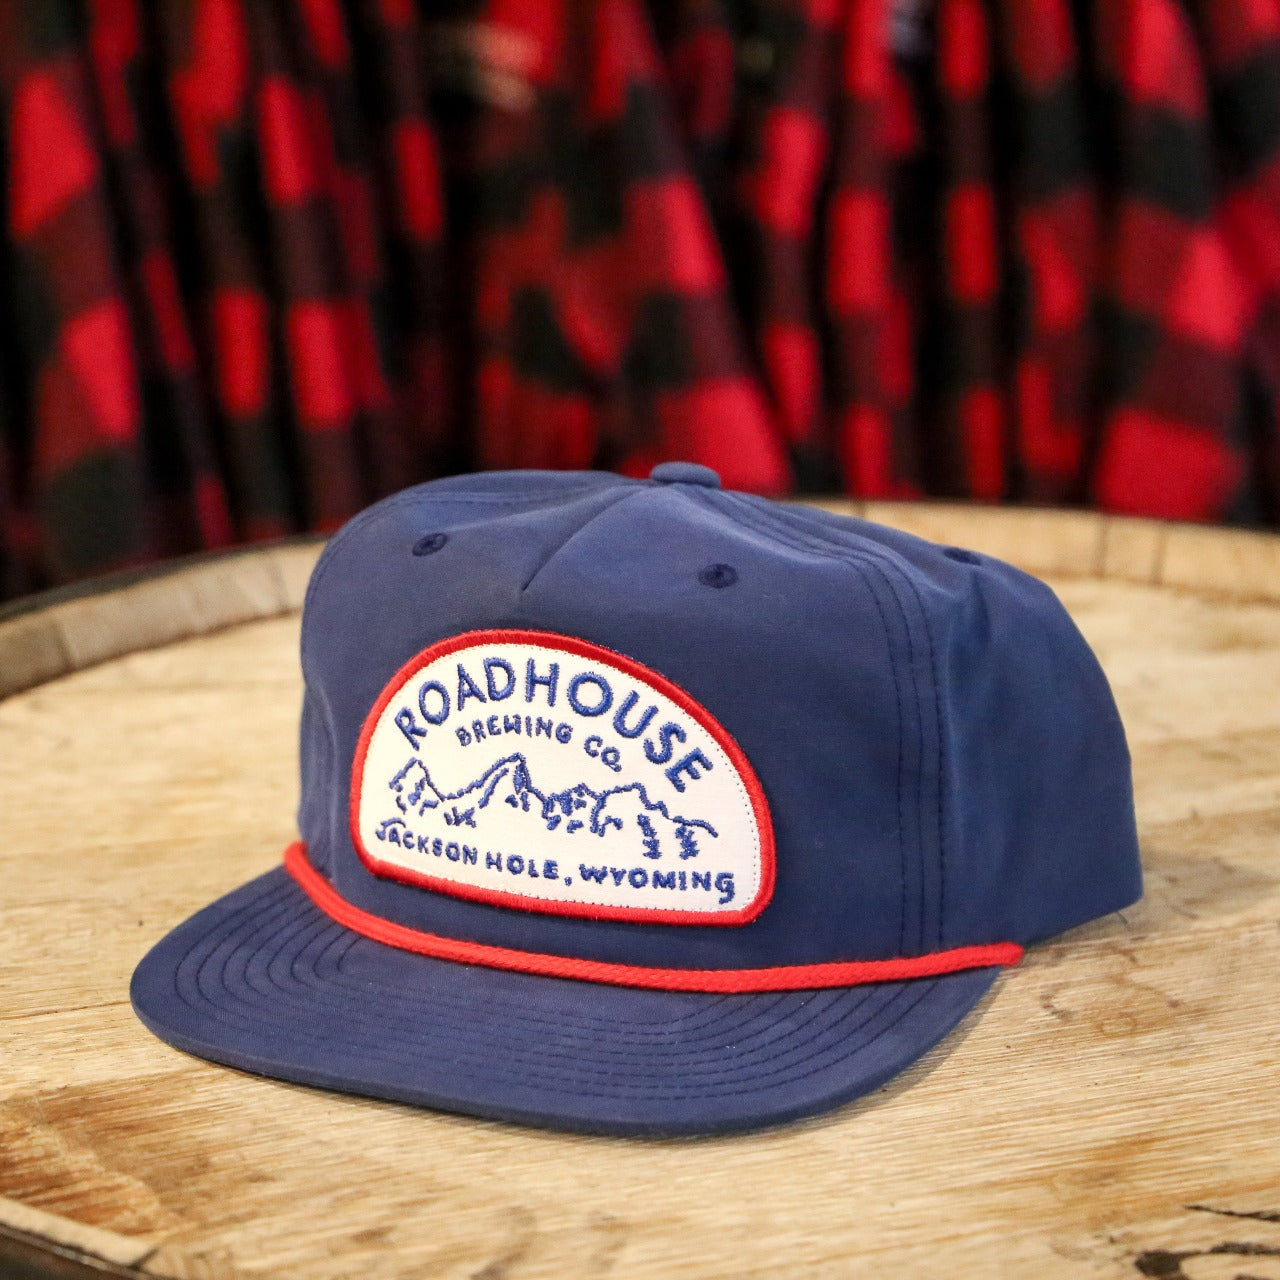 Roadhouse Gramps Patch Hat - Navy